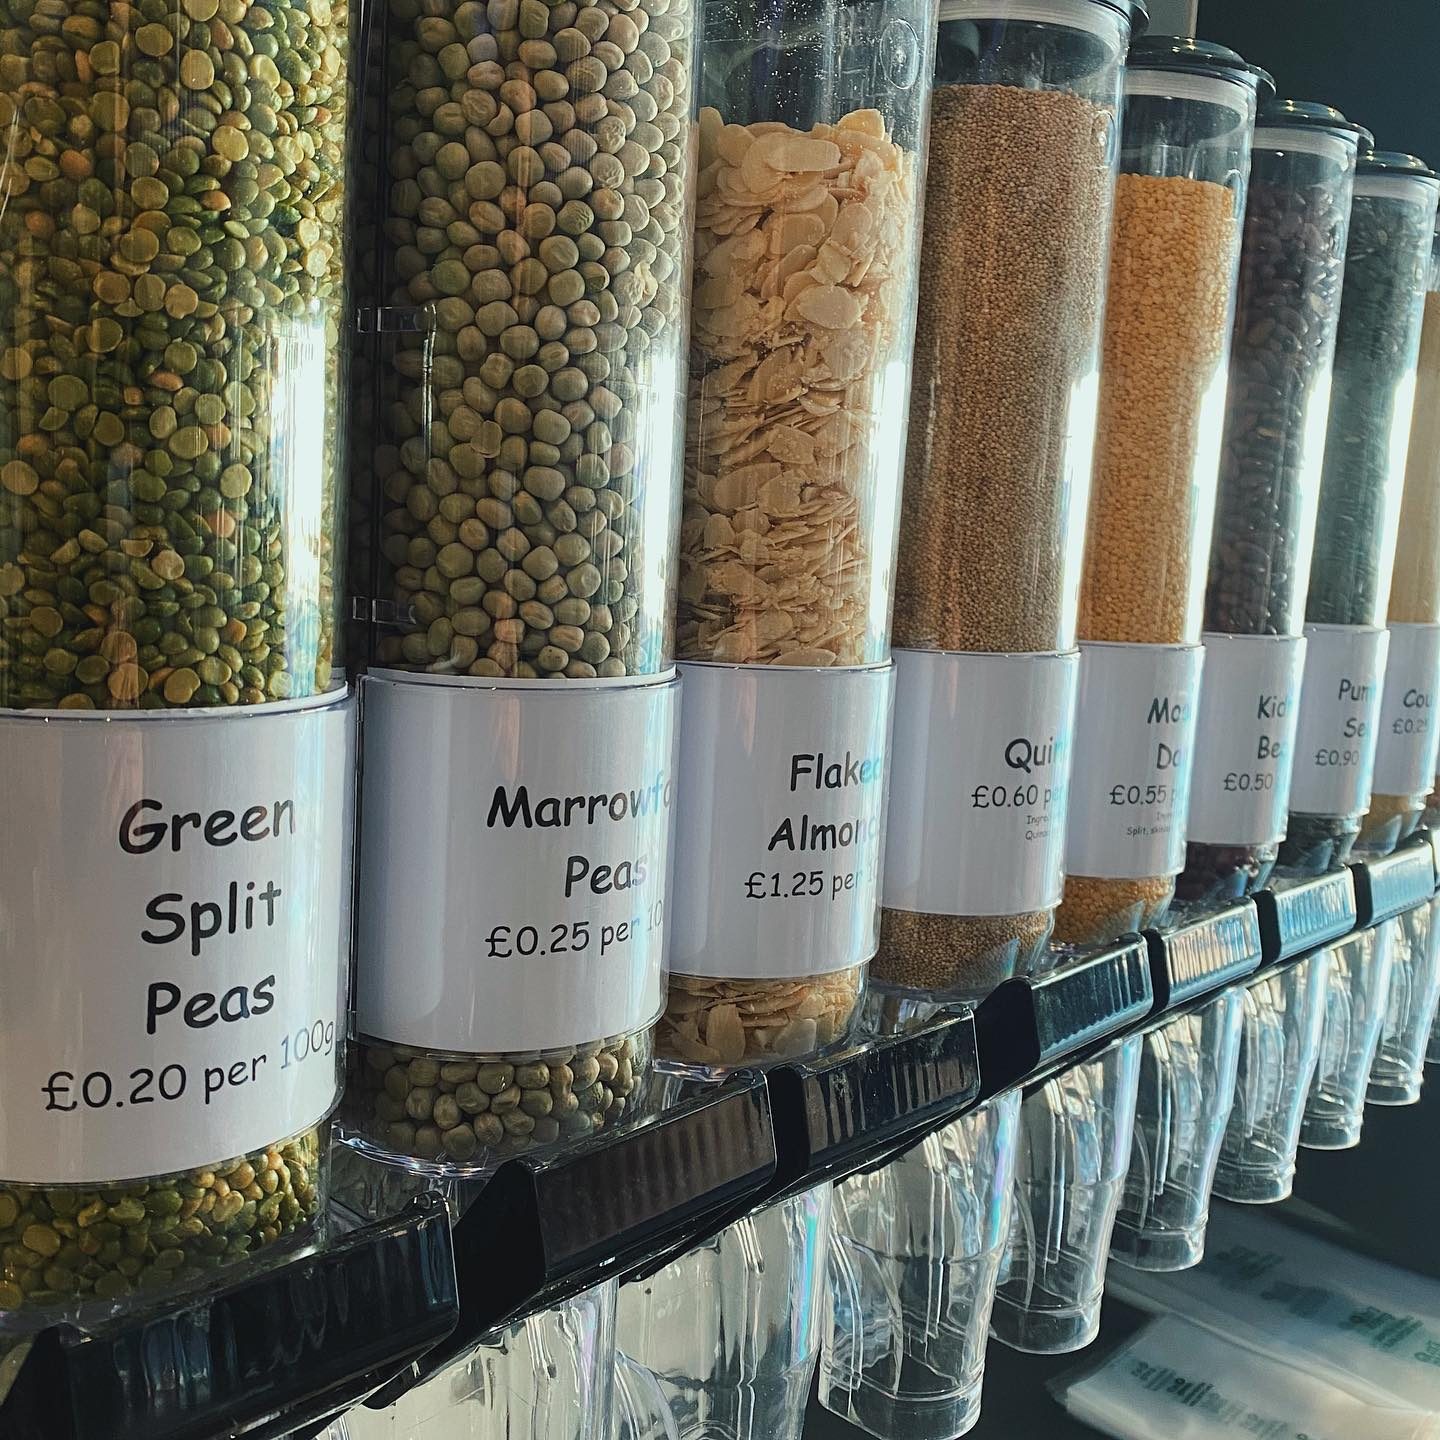 Waste-free 'weigh as you go' store opens in Didsbury, The Manc